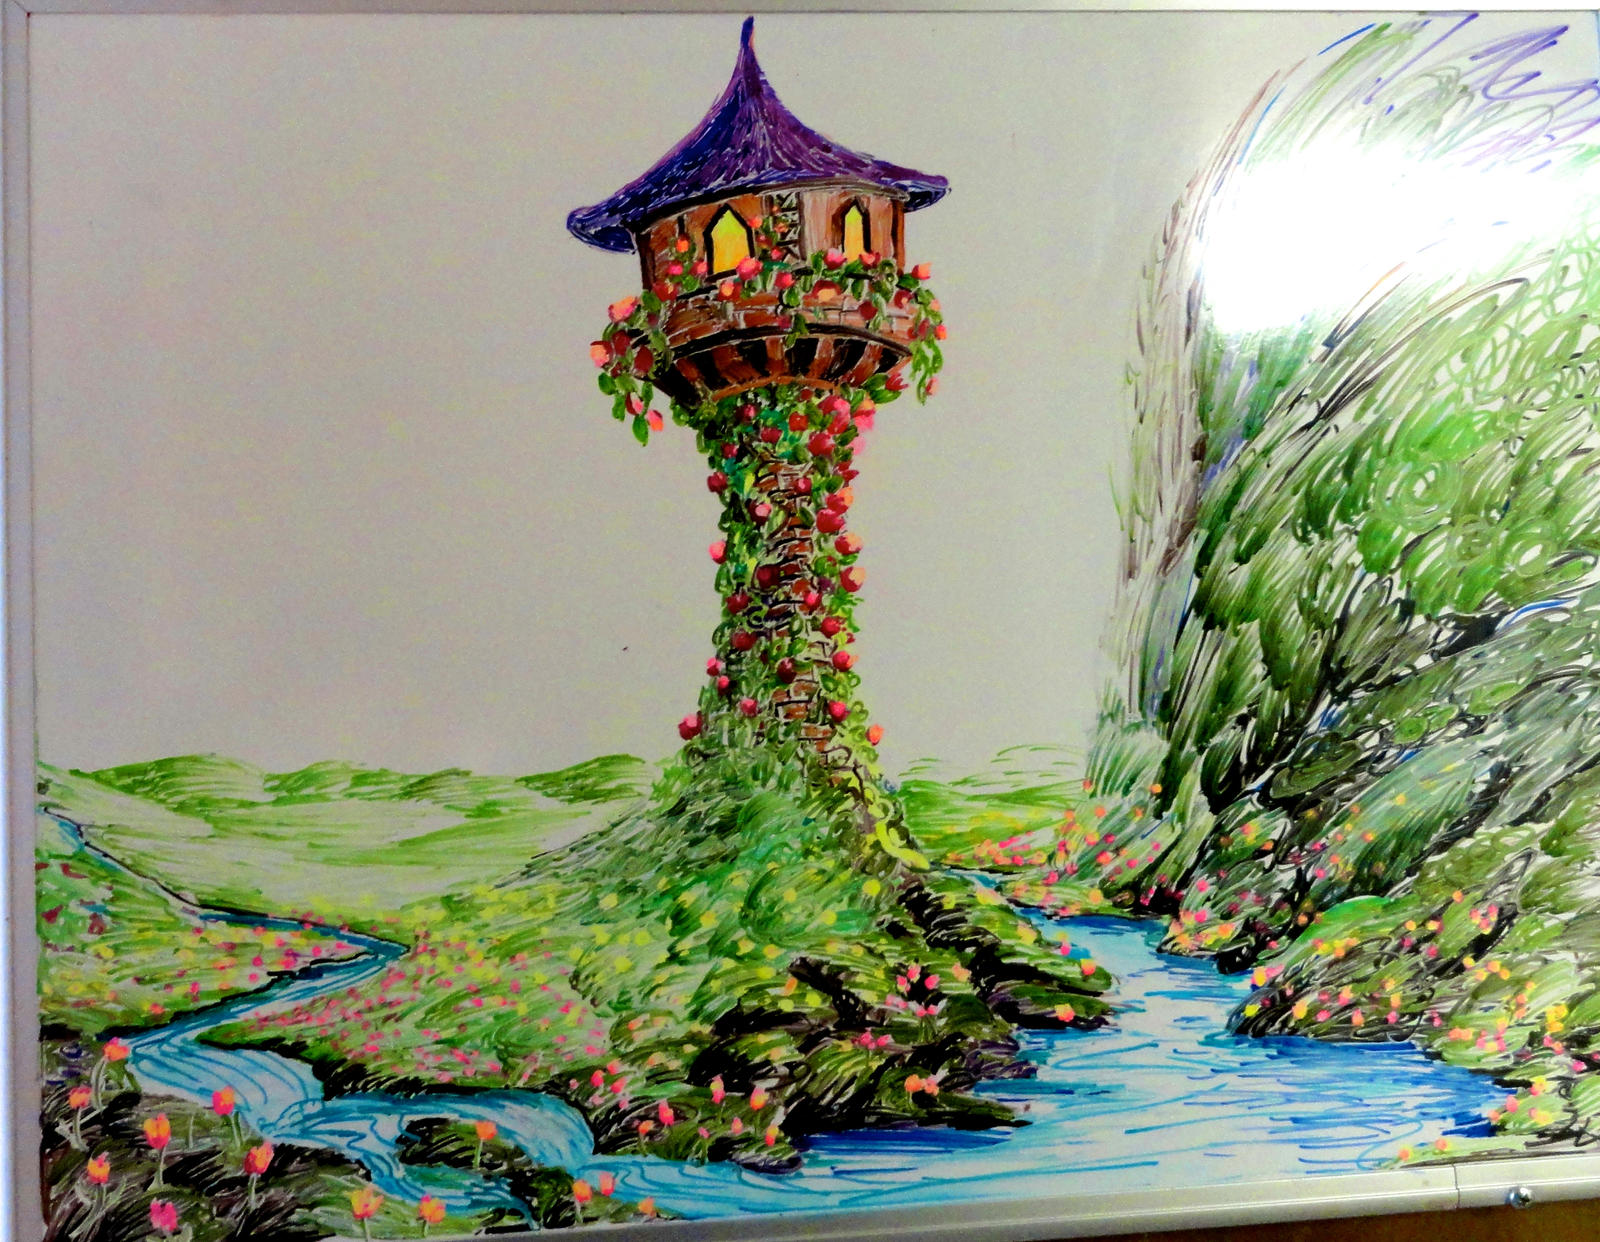 Rapunzel 39 s tower from tangled whiteboard drawing by for Cute whiteboard drawings